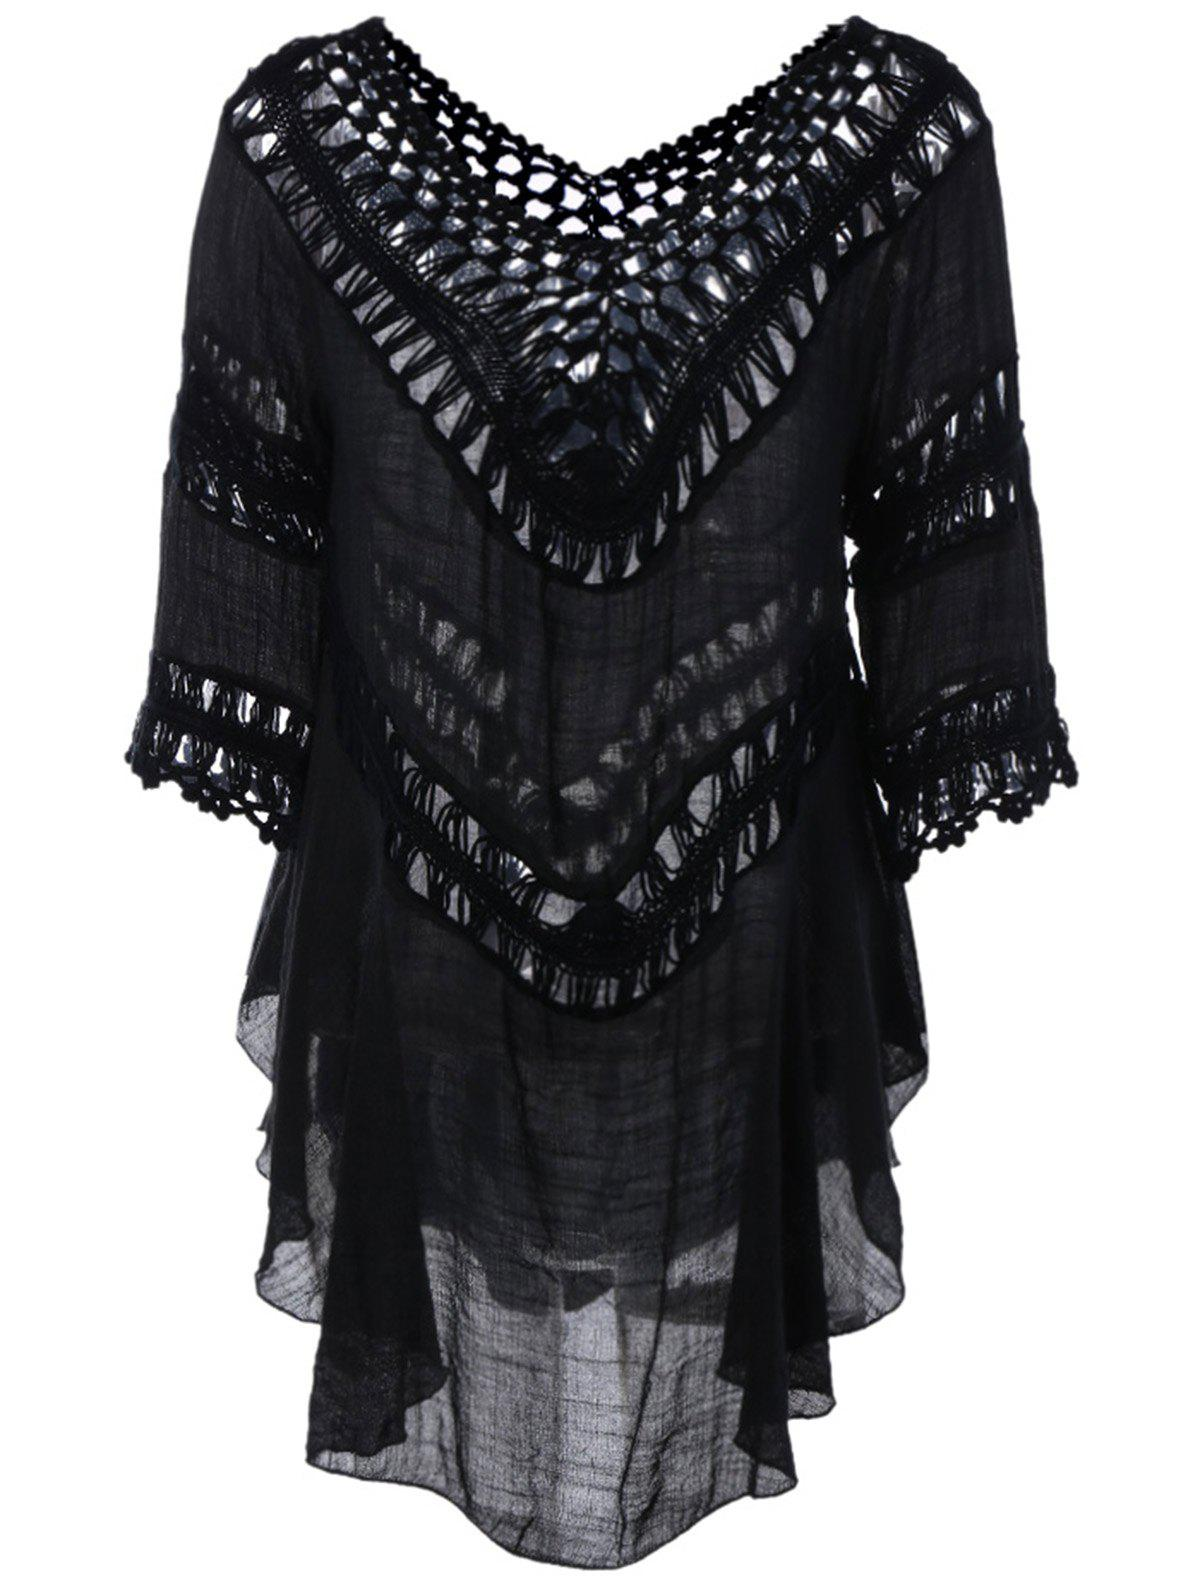 Plunge V Neck See-Through Crochet Tunic Top - BLACK ONE SIZE